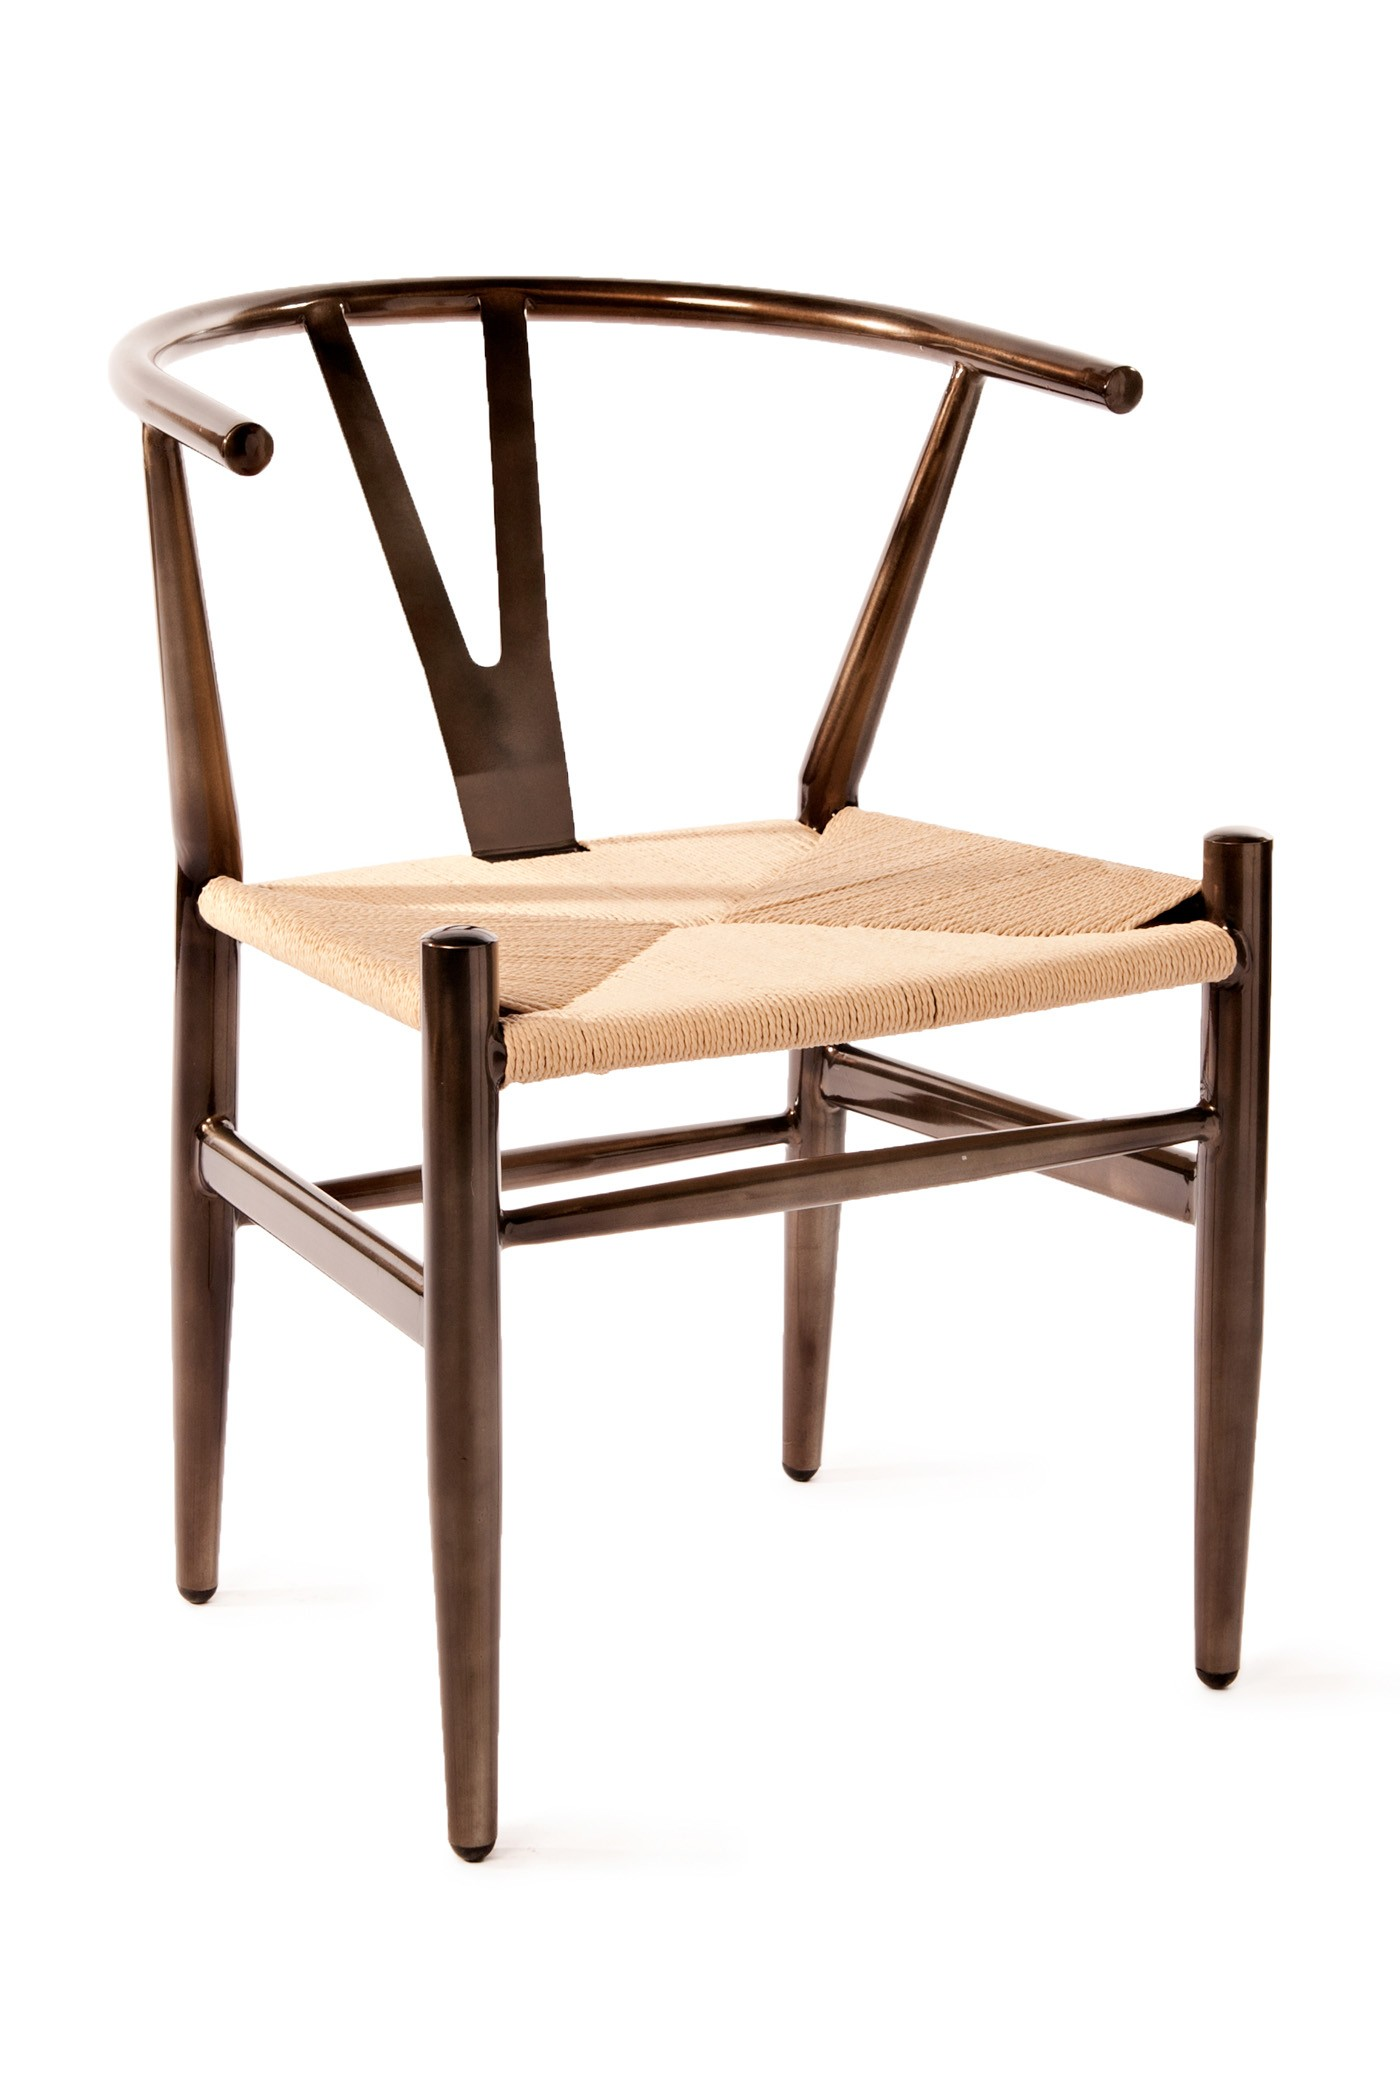 Wegner Designed The Wishbone Chair During The 1940u0027s As Part Of The China  Chair Series, Inspired By Portraits Of Danish Merchants Sitting In Ming  Dynasty ...